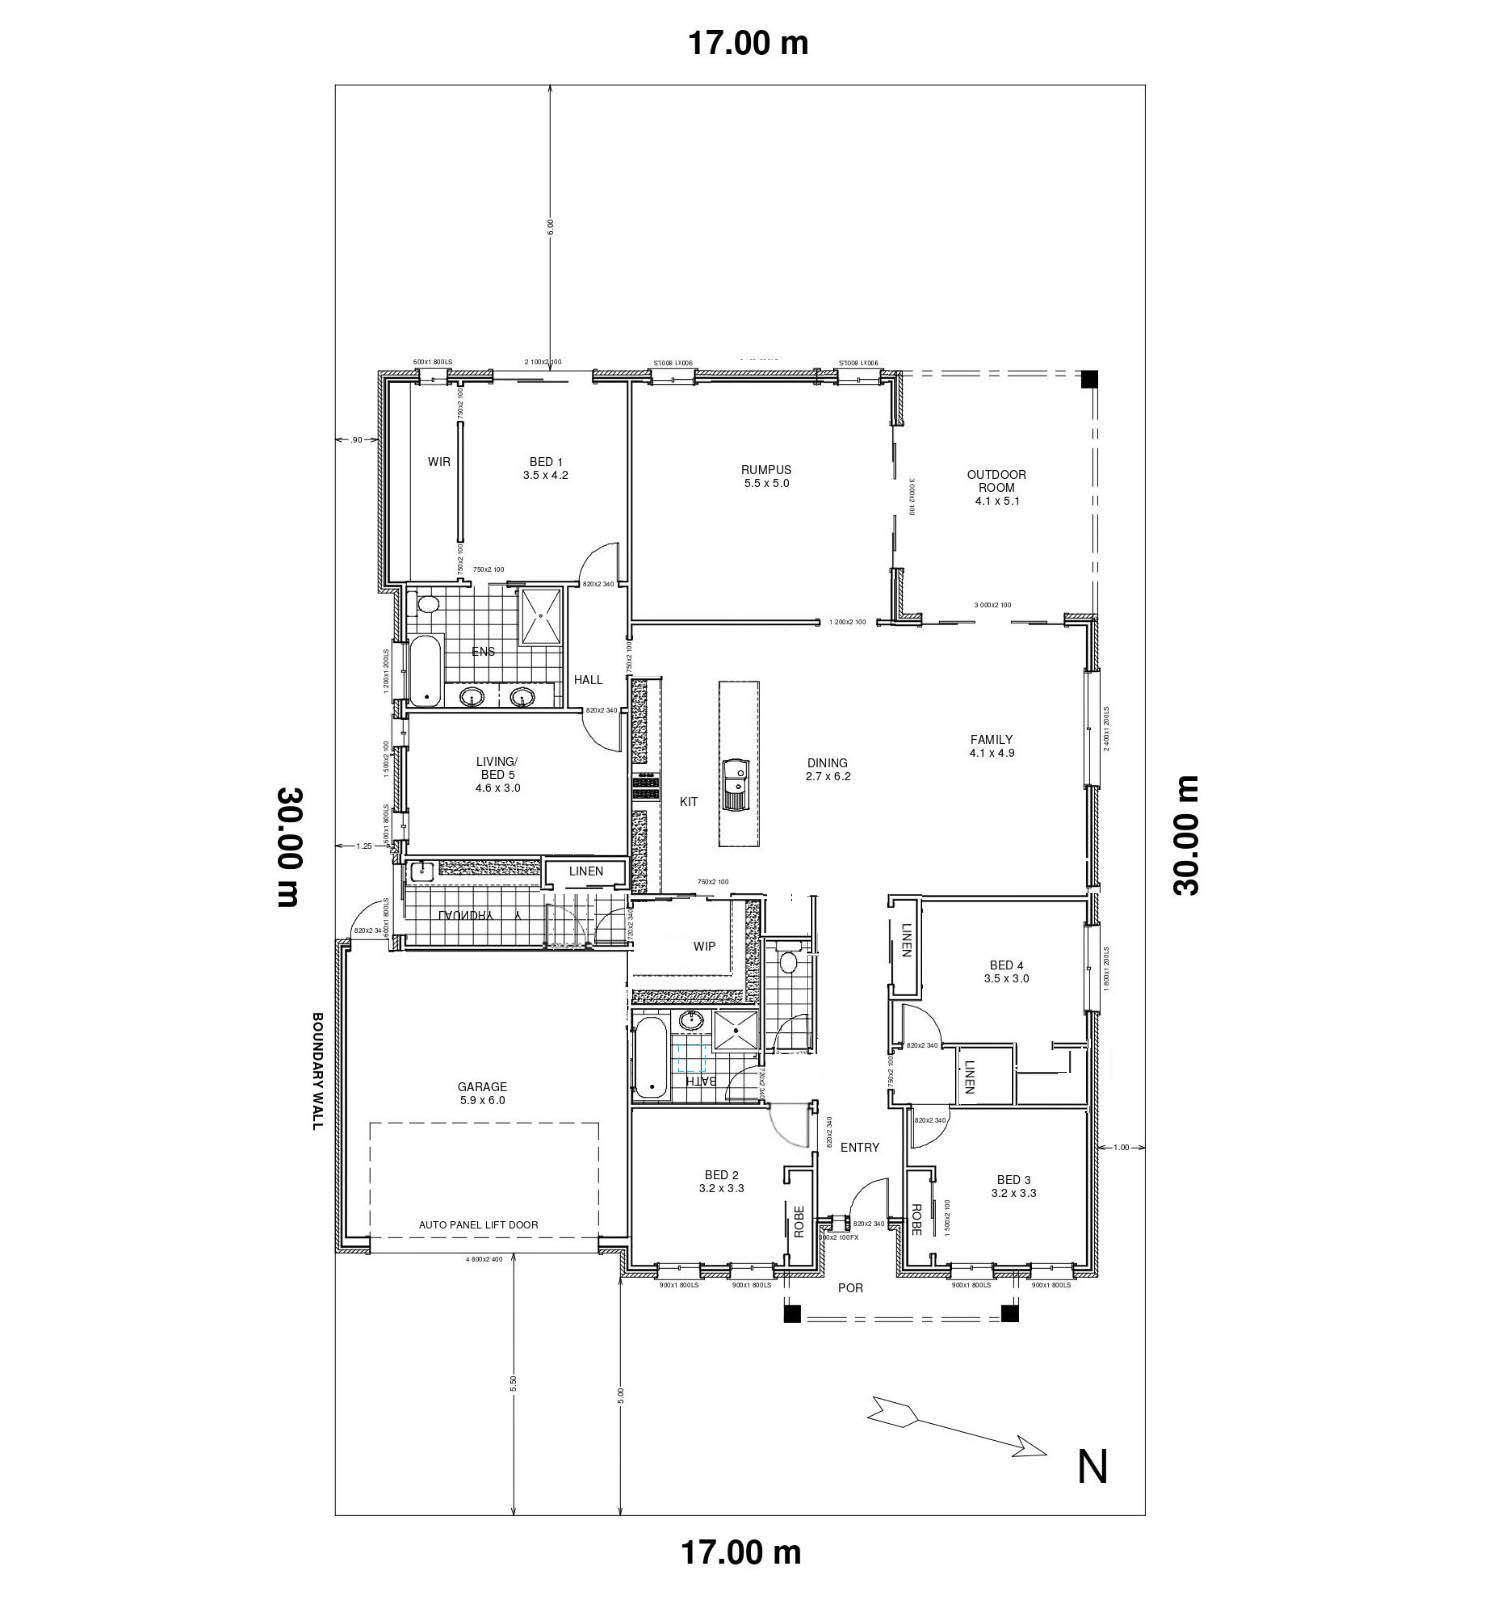 Need Floor-plan Feedback/Recommendations Please